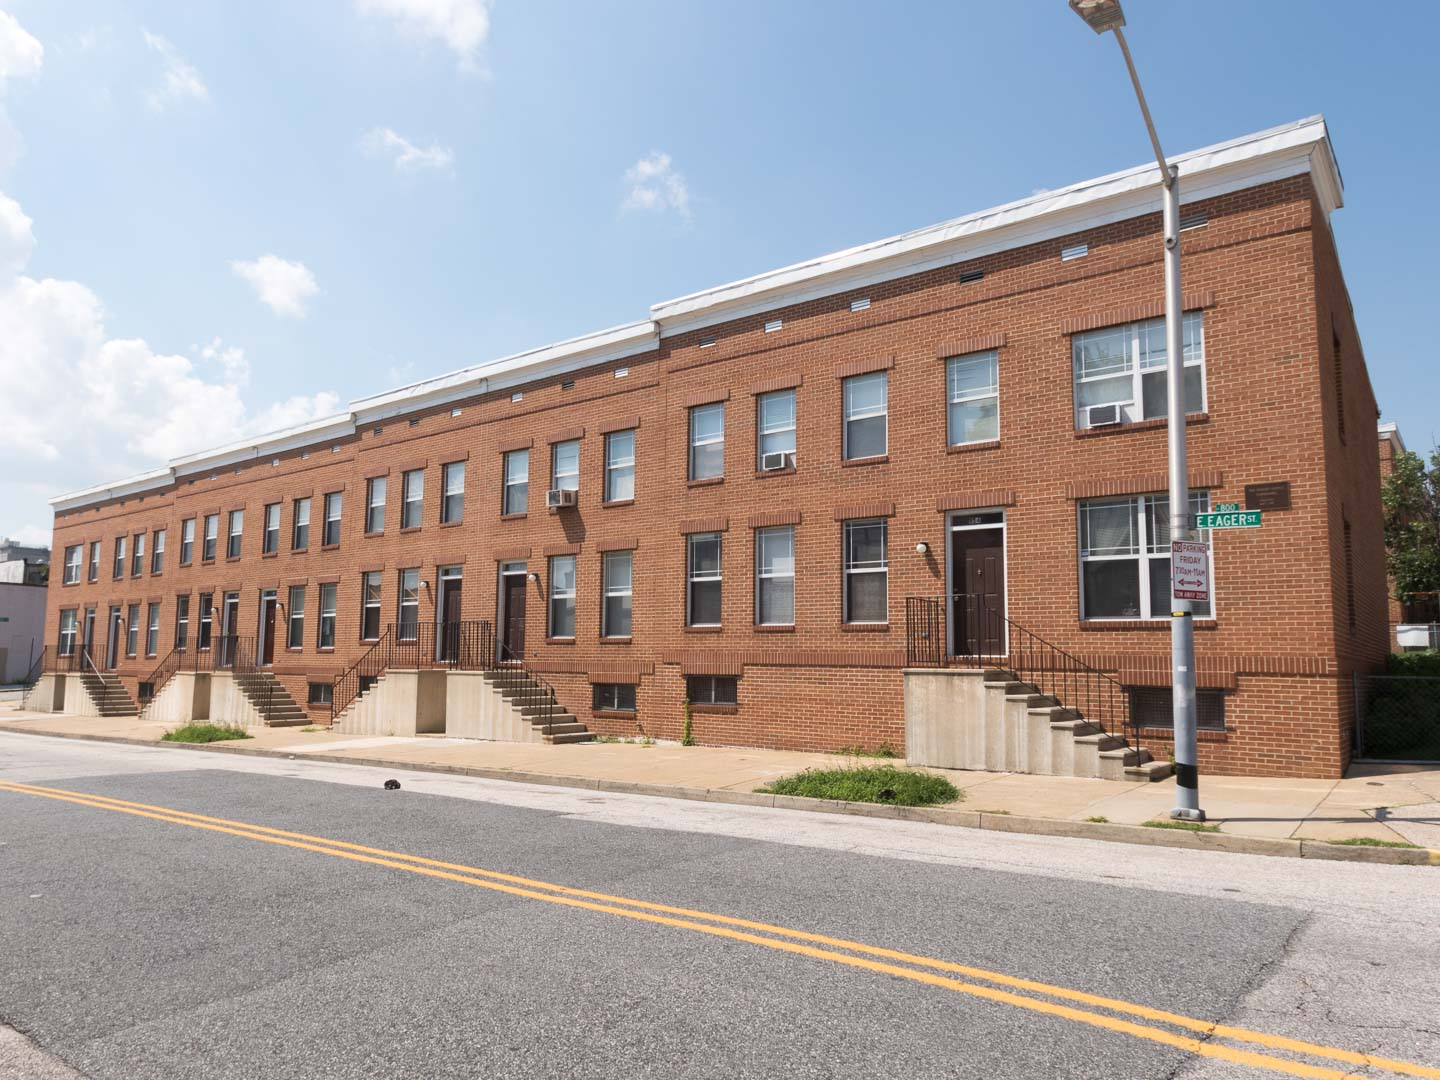 Bankruptcy trustees auction fully leased assemblage comprising bankruptcy trustees auction fully leased assemblage comprising 37 townhomes and 2 duplexes located in the johnston square neighborhood of baltimore city xflitez Choice Image